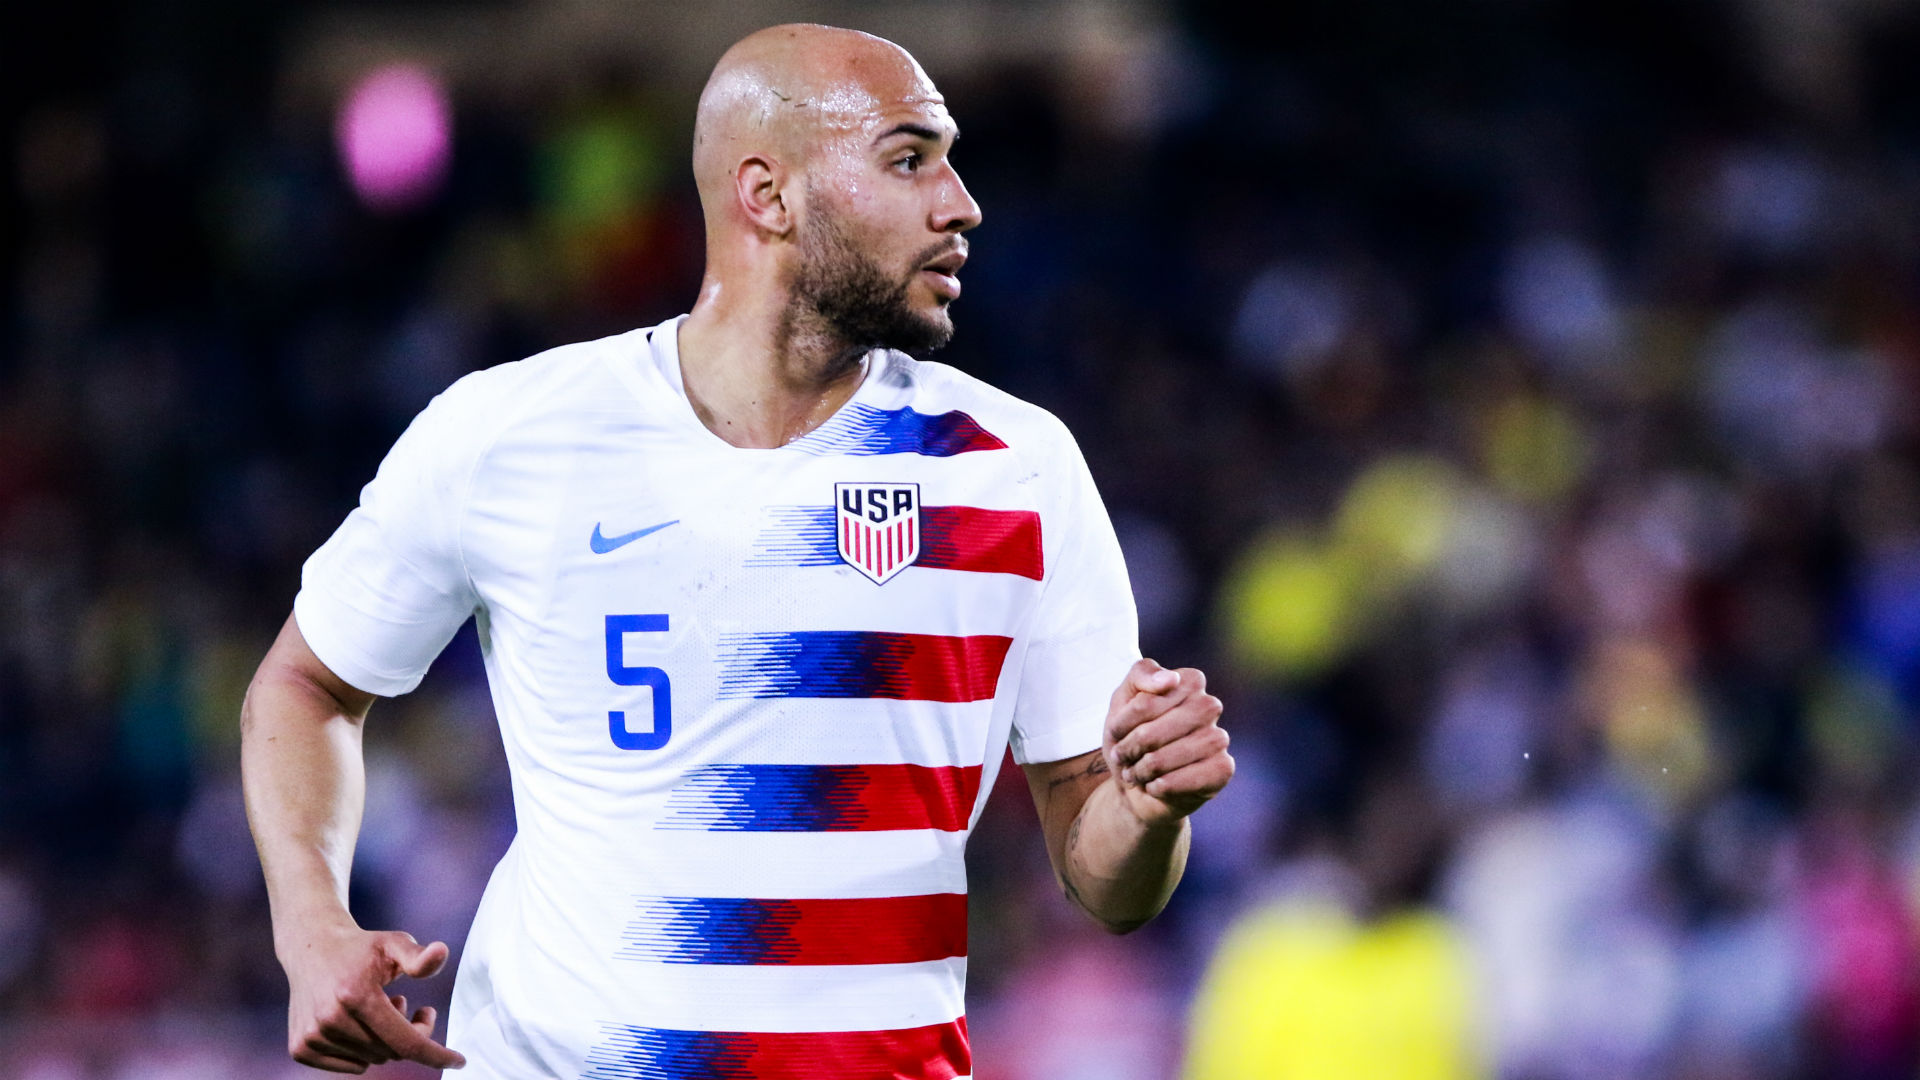 Brooks and Yedlin to miss Gold Cup as USMNT preliminary roster revealed